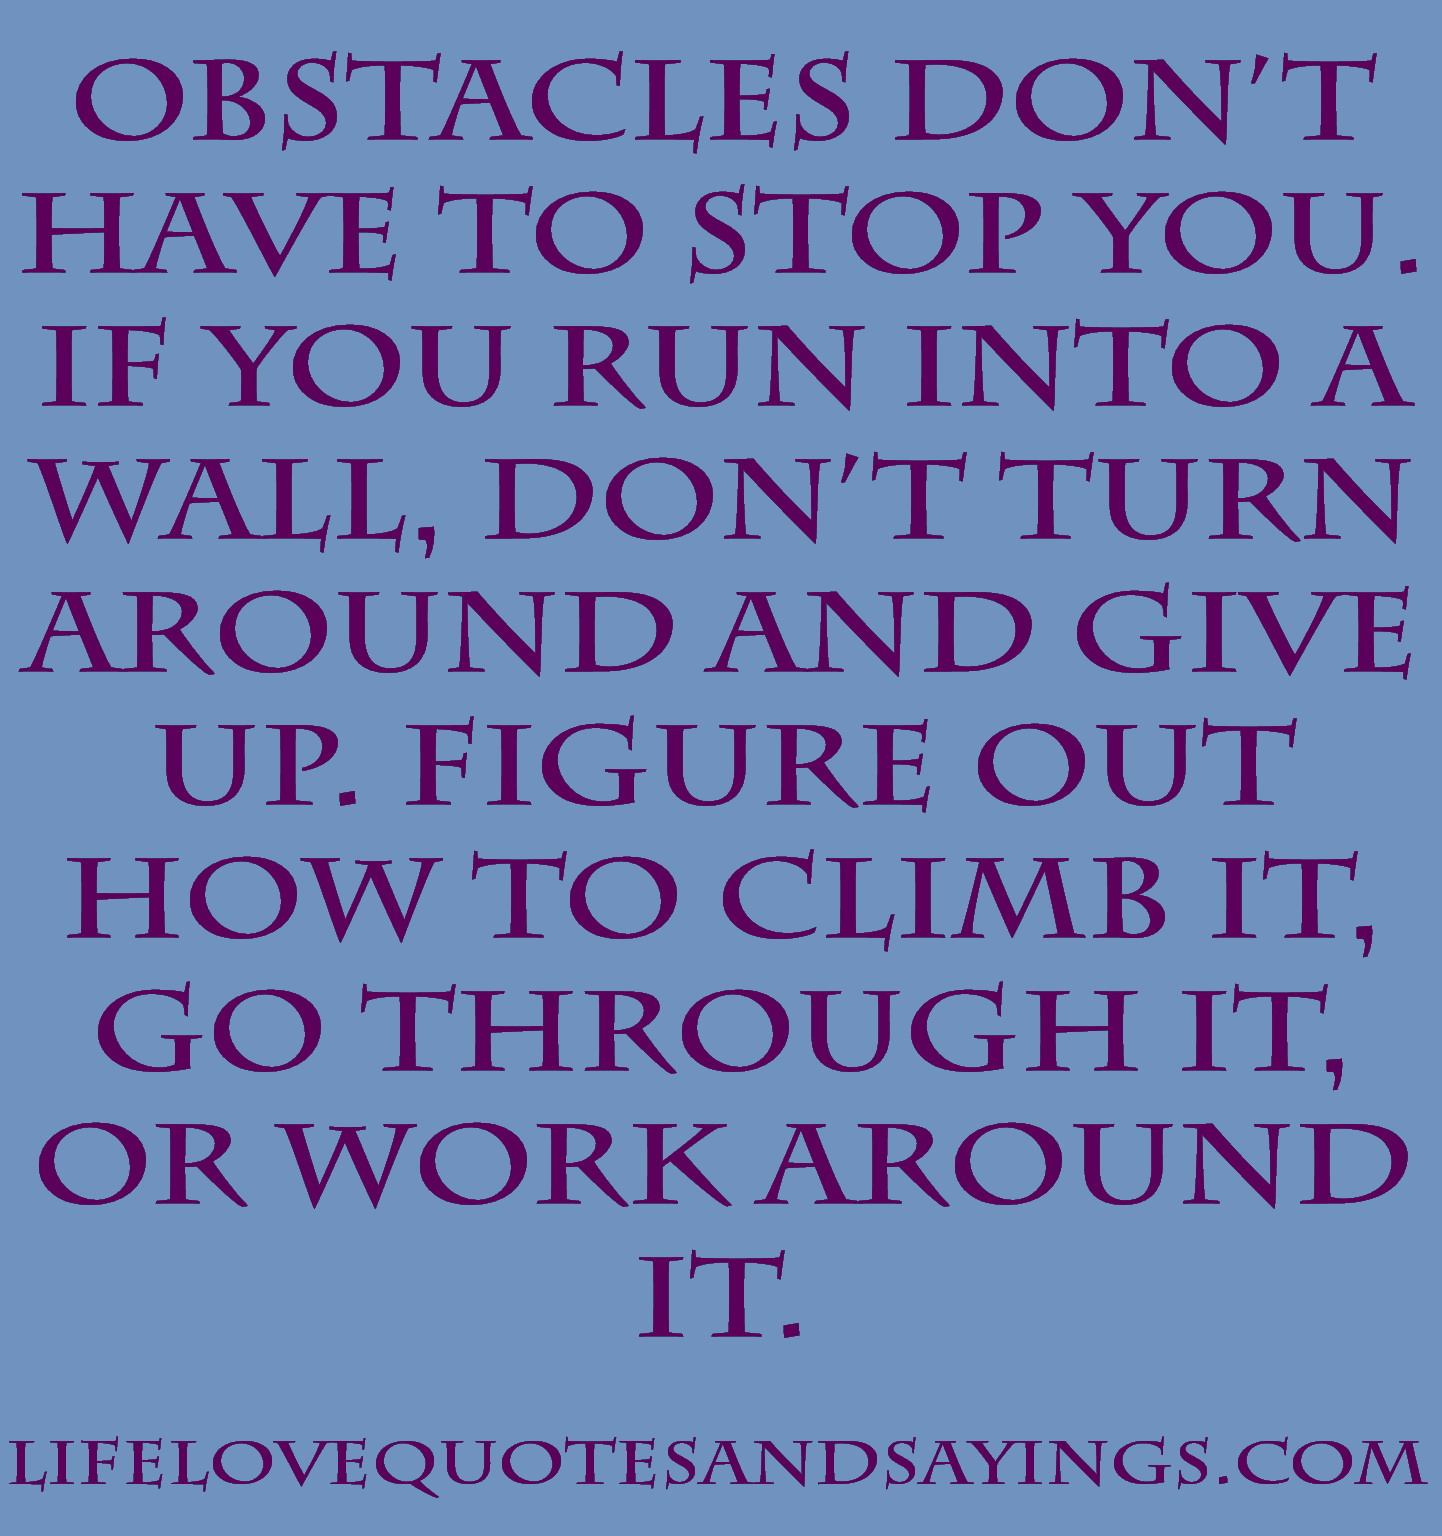 New Relationship Love Quotes: Relationship Obstacles Quotes. QuotesGram